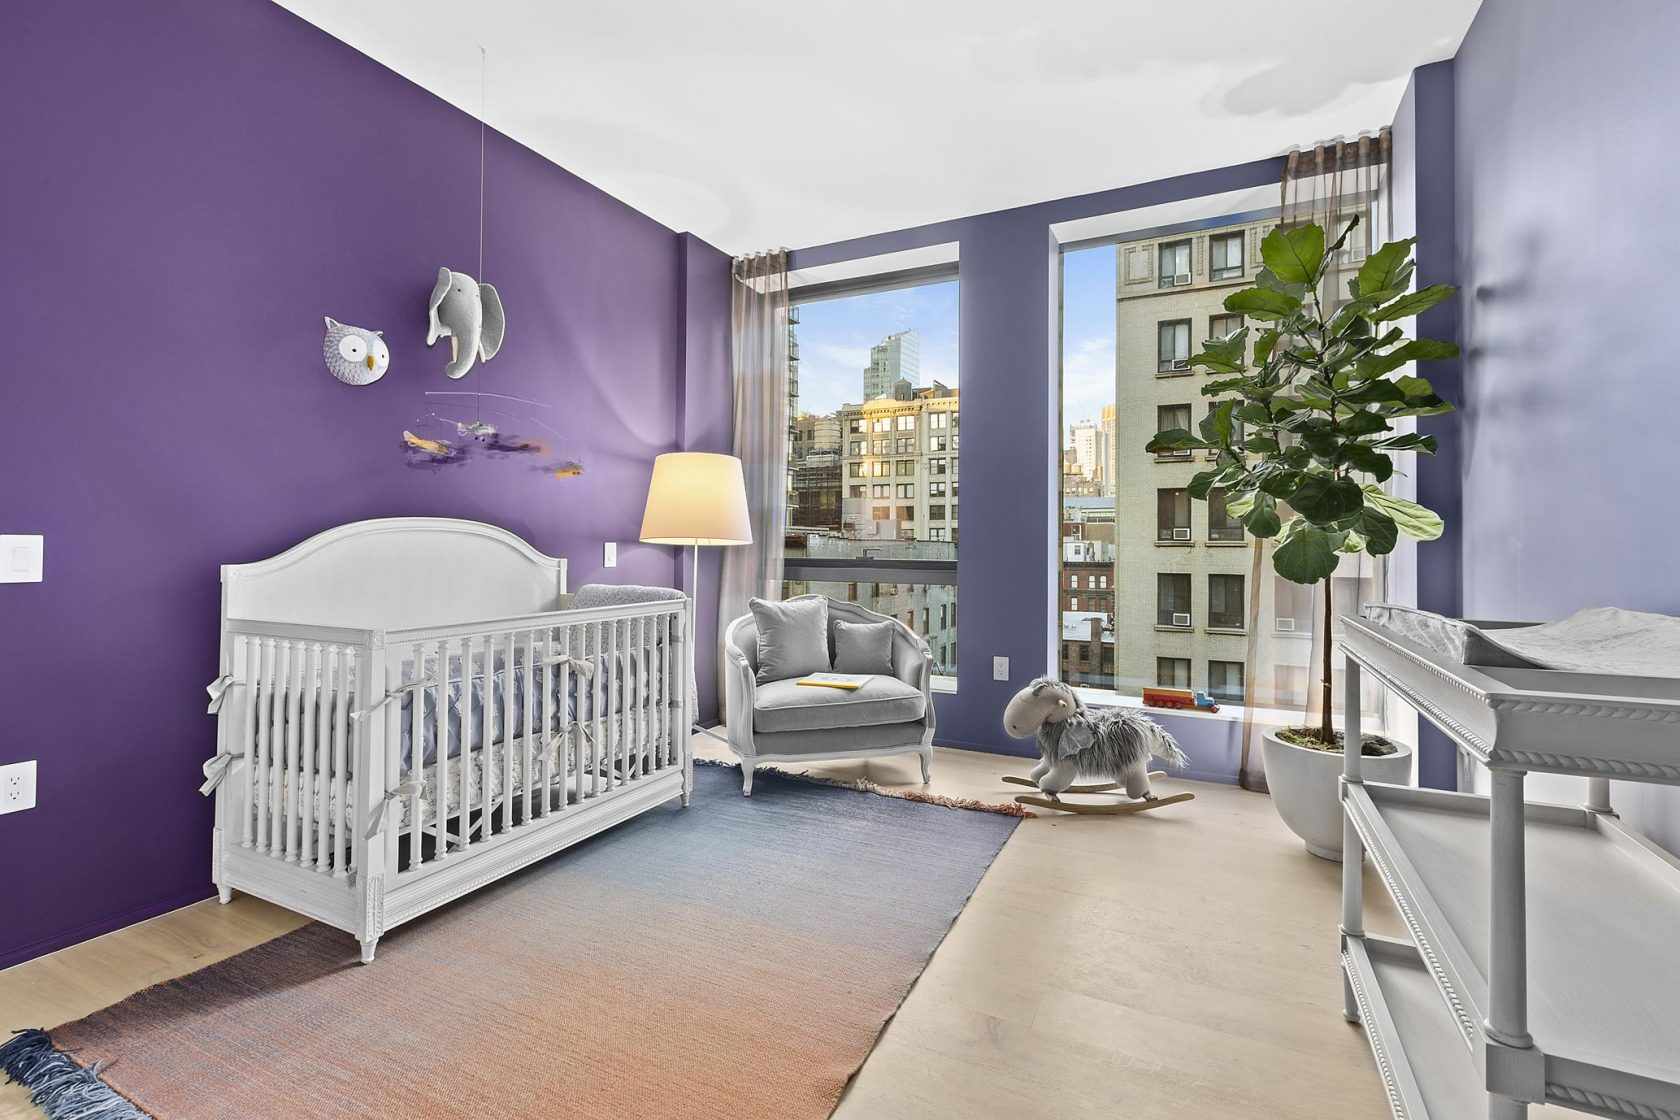 Baby room featuring a bold, vibrant purple color scheme